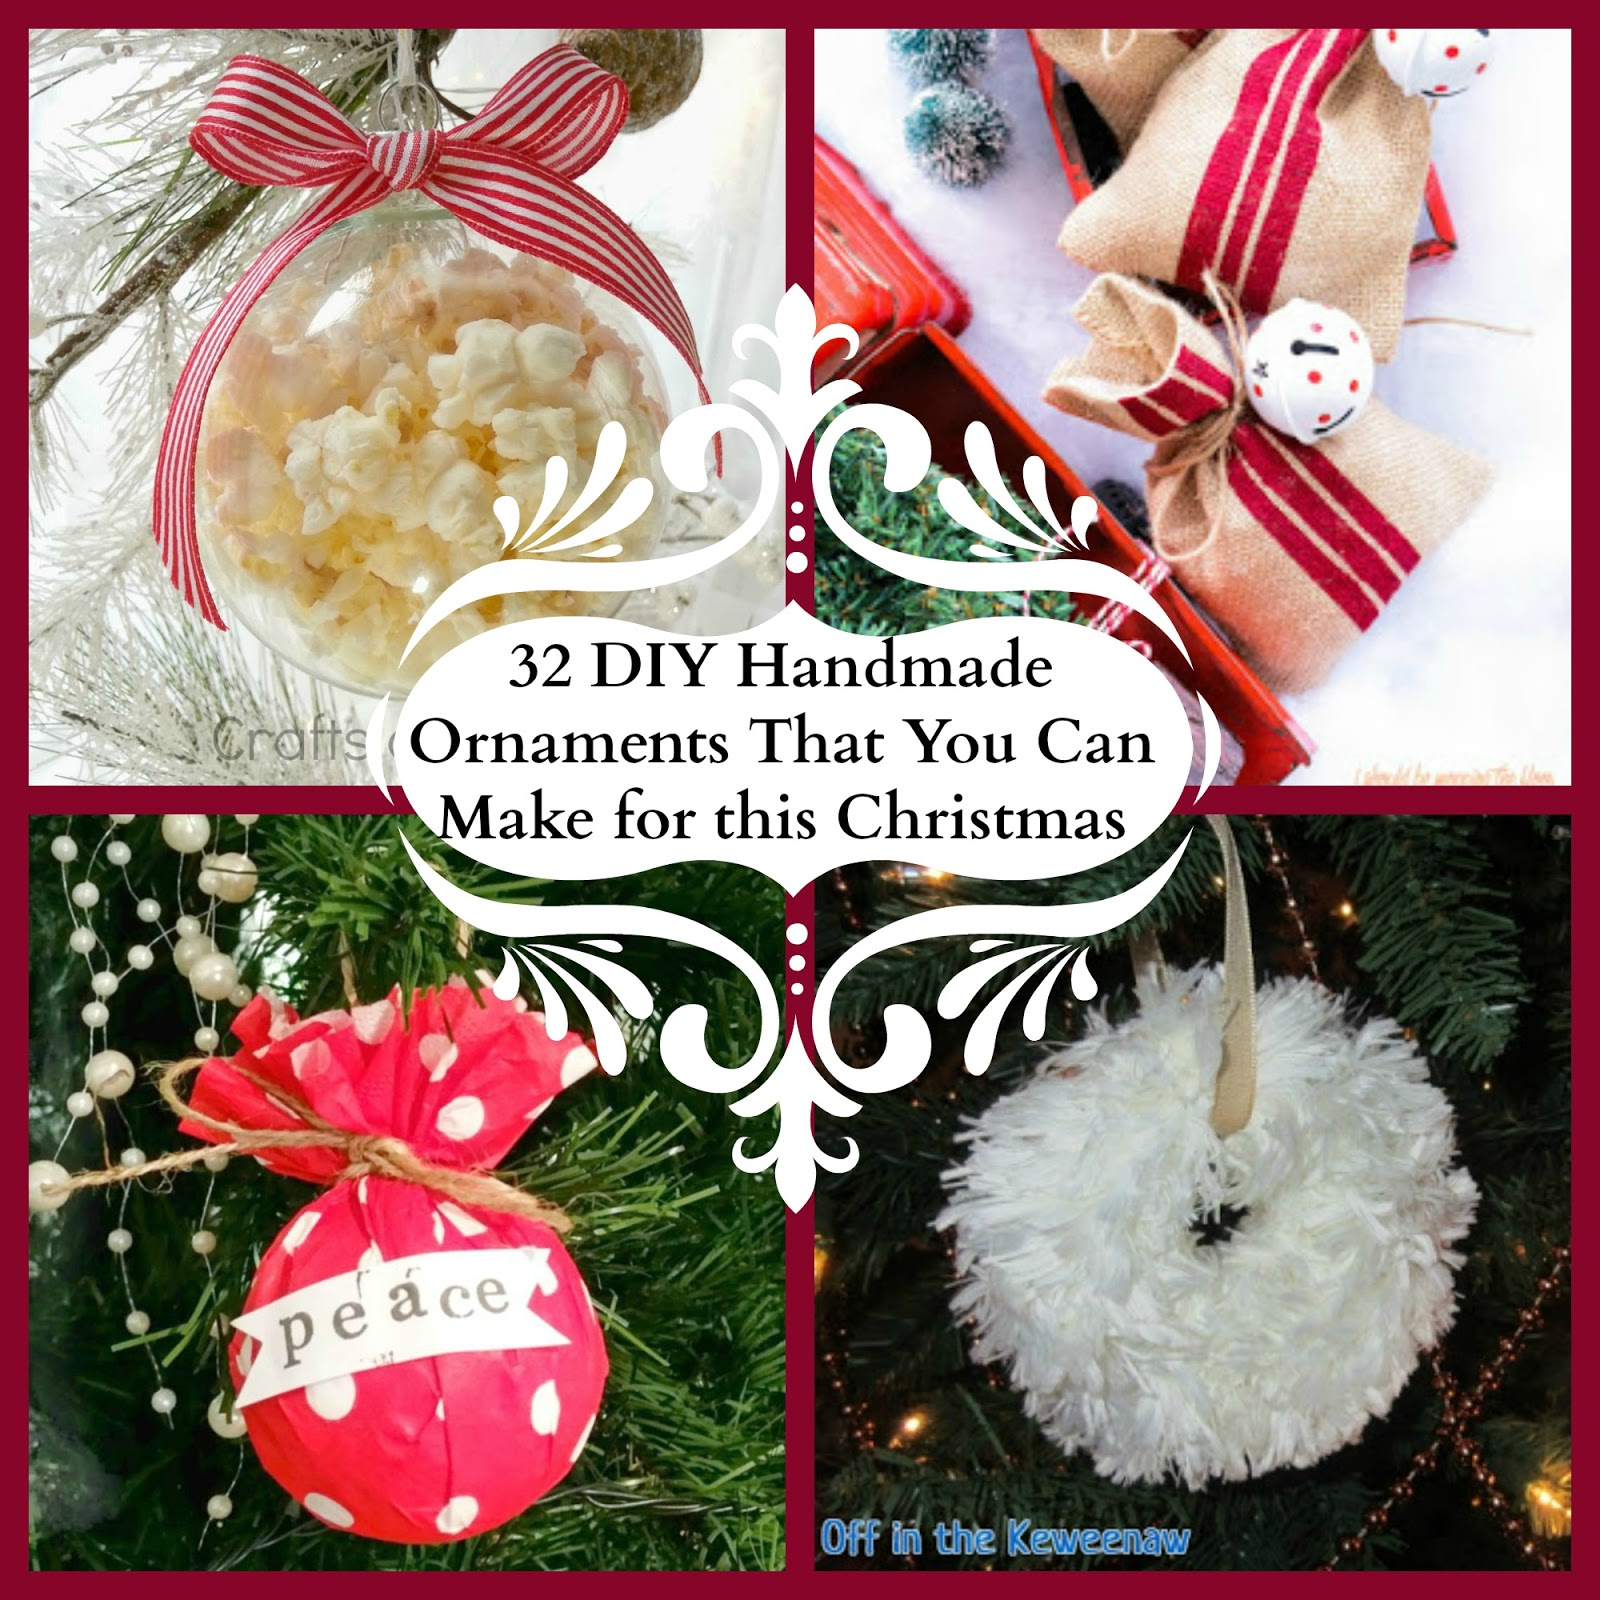 Shoestring elegance 32 diy handmade ornaments that you can make for why not take some time together to make some memories following are all handmade ornaments that are fun and relatively easy to make solutioingenieria Images